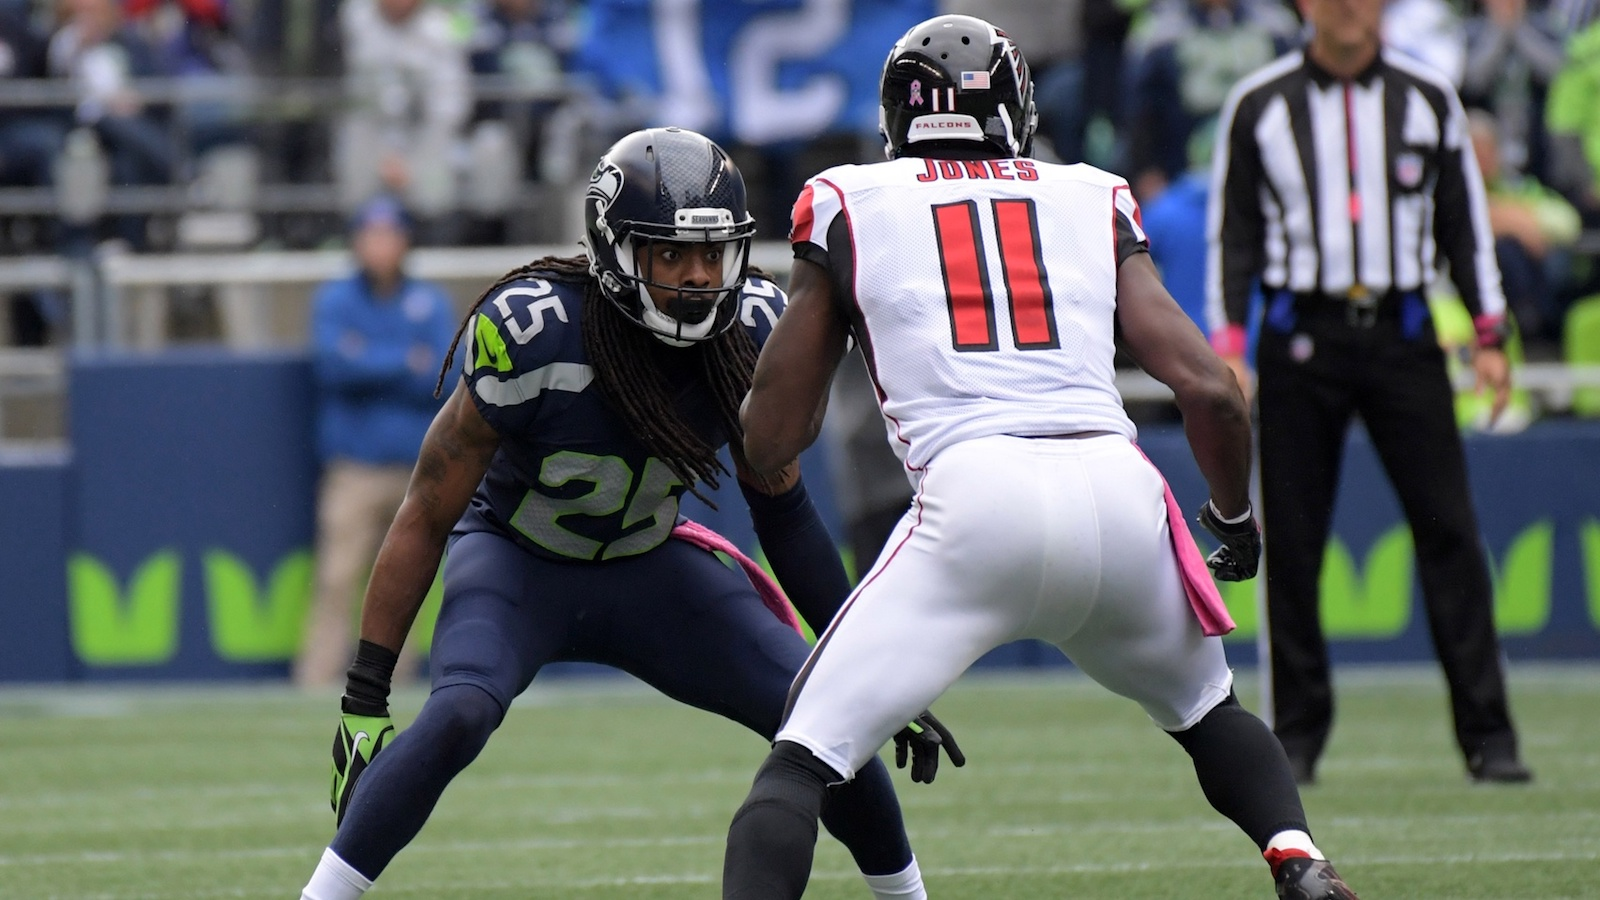 011017-NFL-Falcons-Seahawks-Julio-Jones-Richard-Sherman